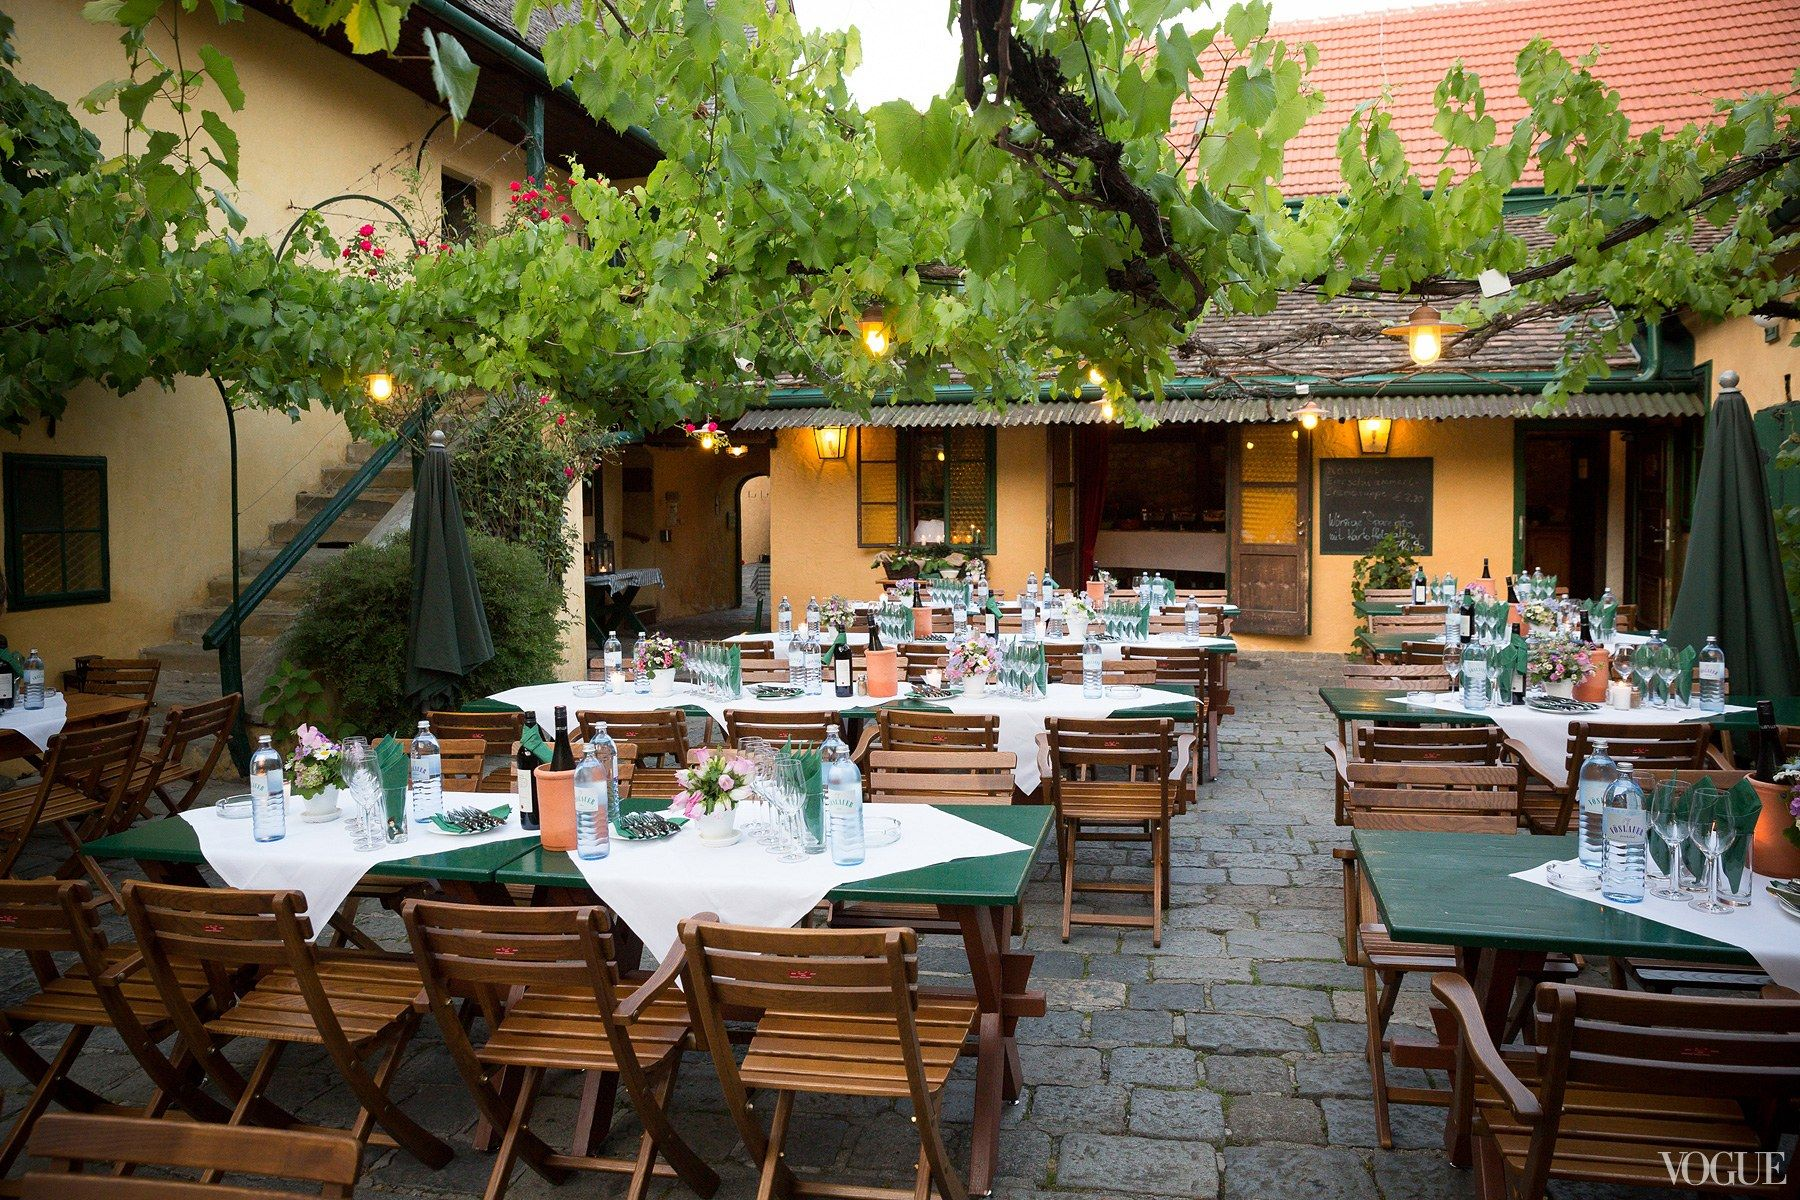 The Heuriger Wine Tavern In Vienna Where Friday Night S Rehearsal Dinner Took Place